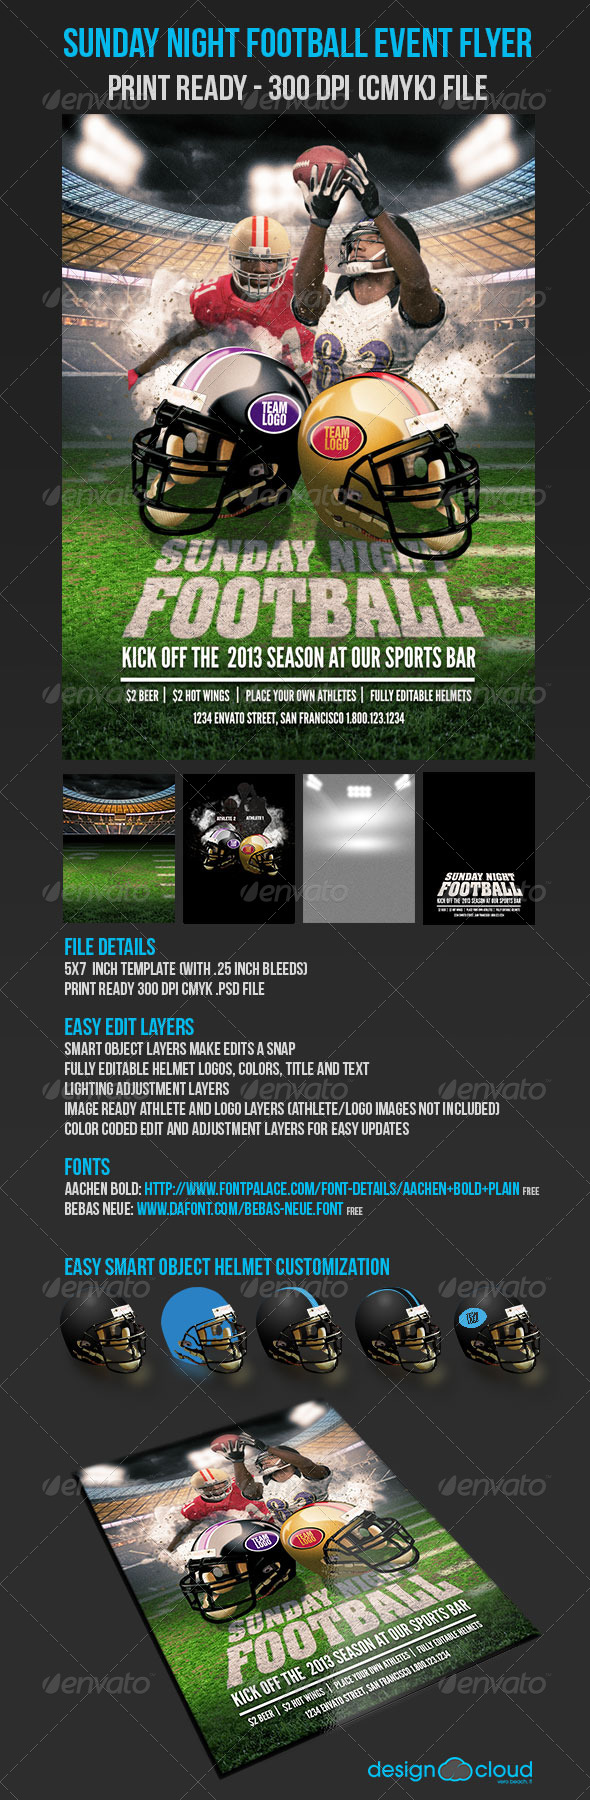 GraphicRiver Sunday Night Football Flyer 5249888